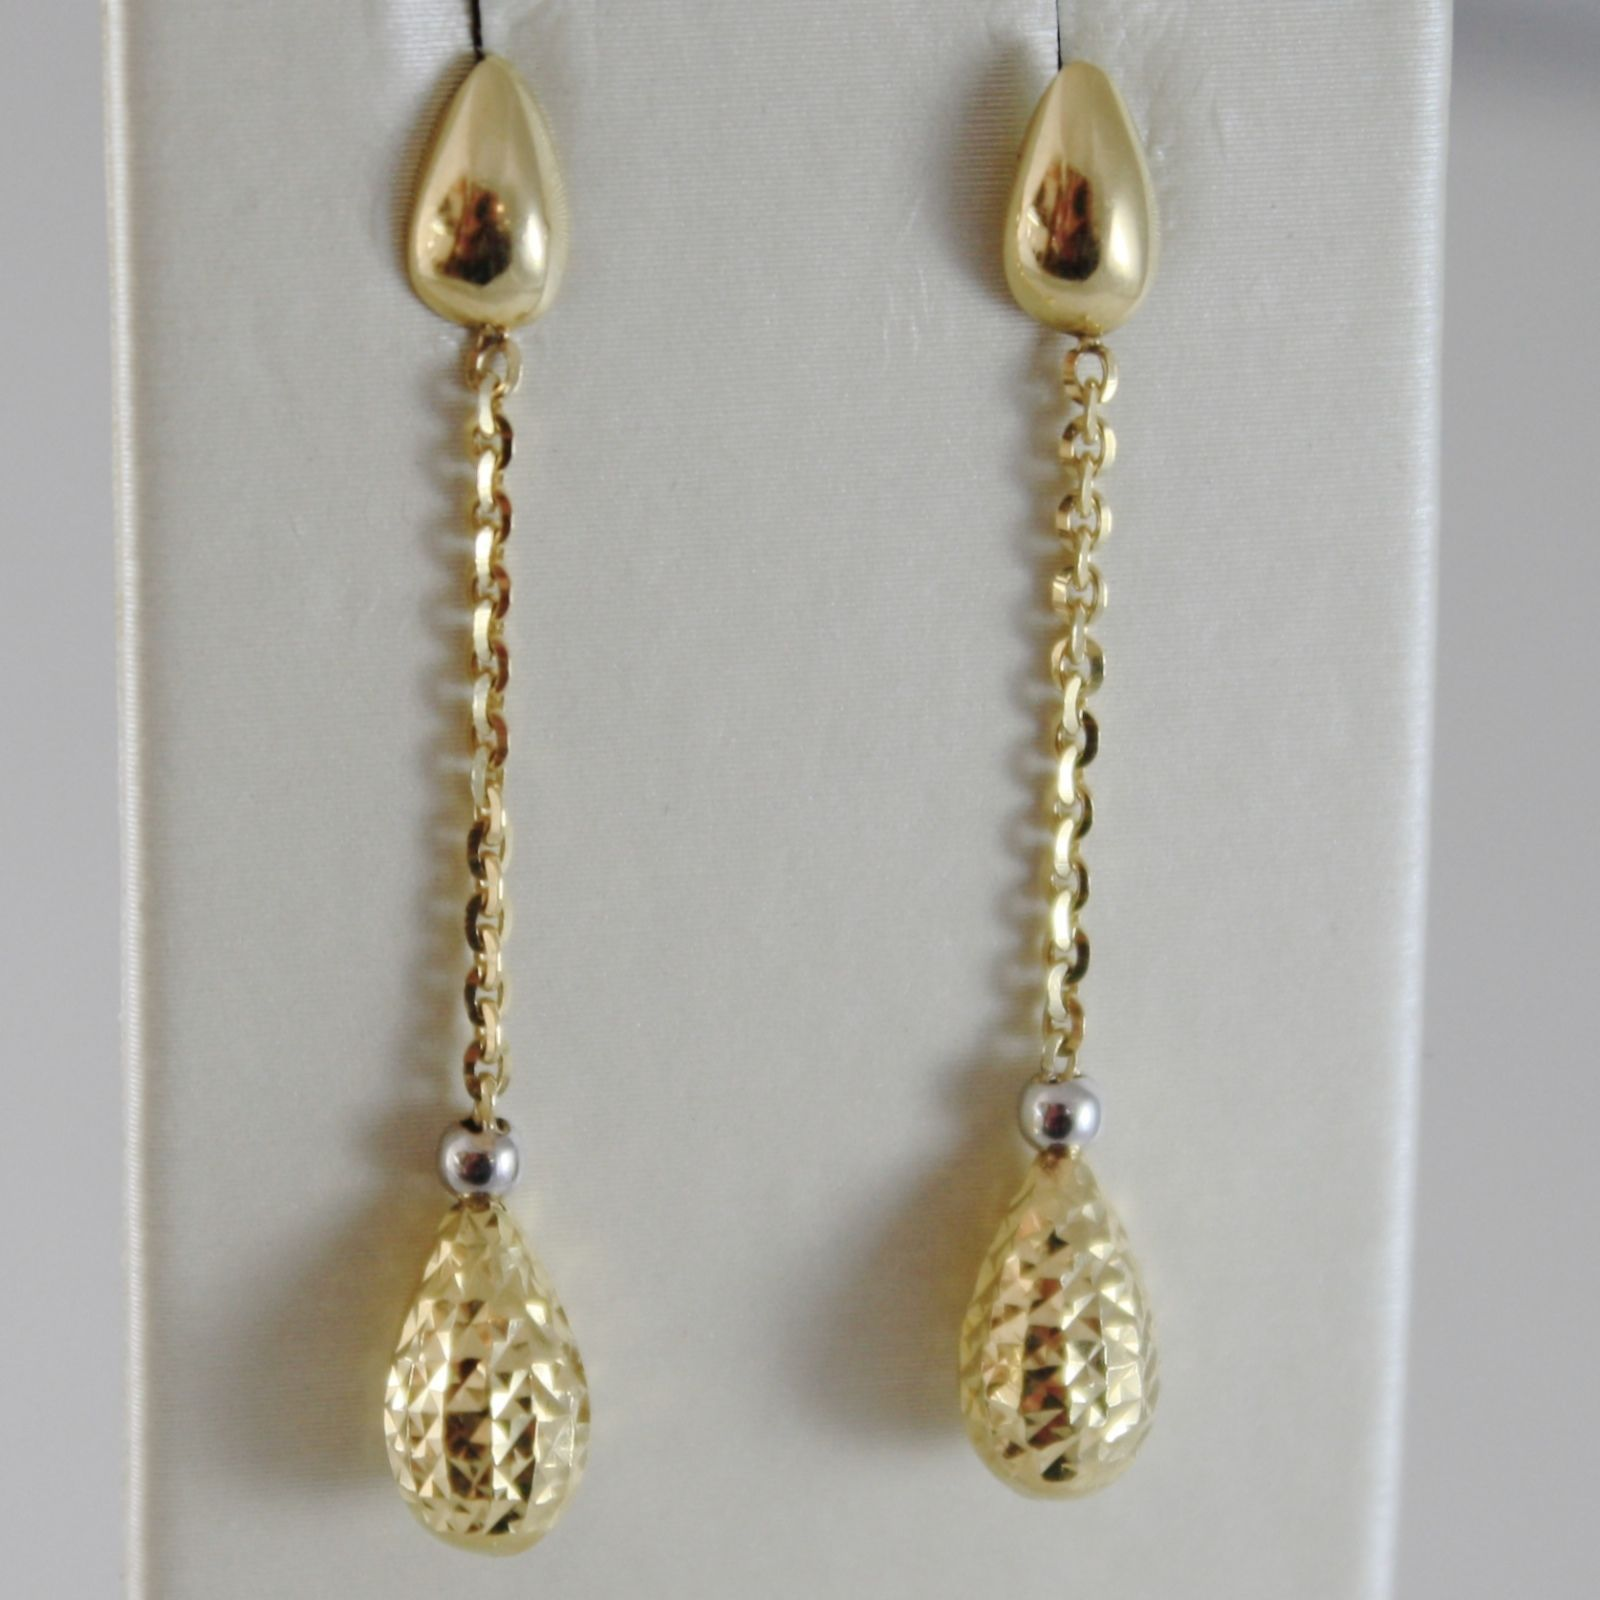 18K YELLOW & WHITE GOLD PENDANT EARRINGS WITH WORKED DROPS, DROP, MADE IN ITALY